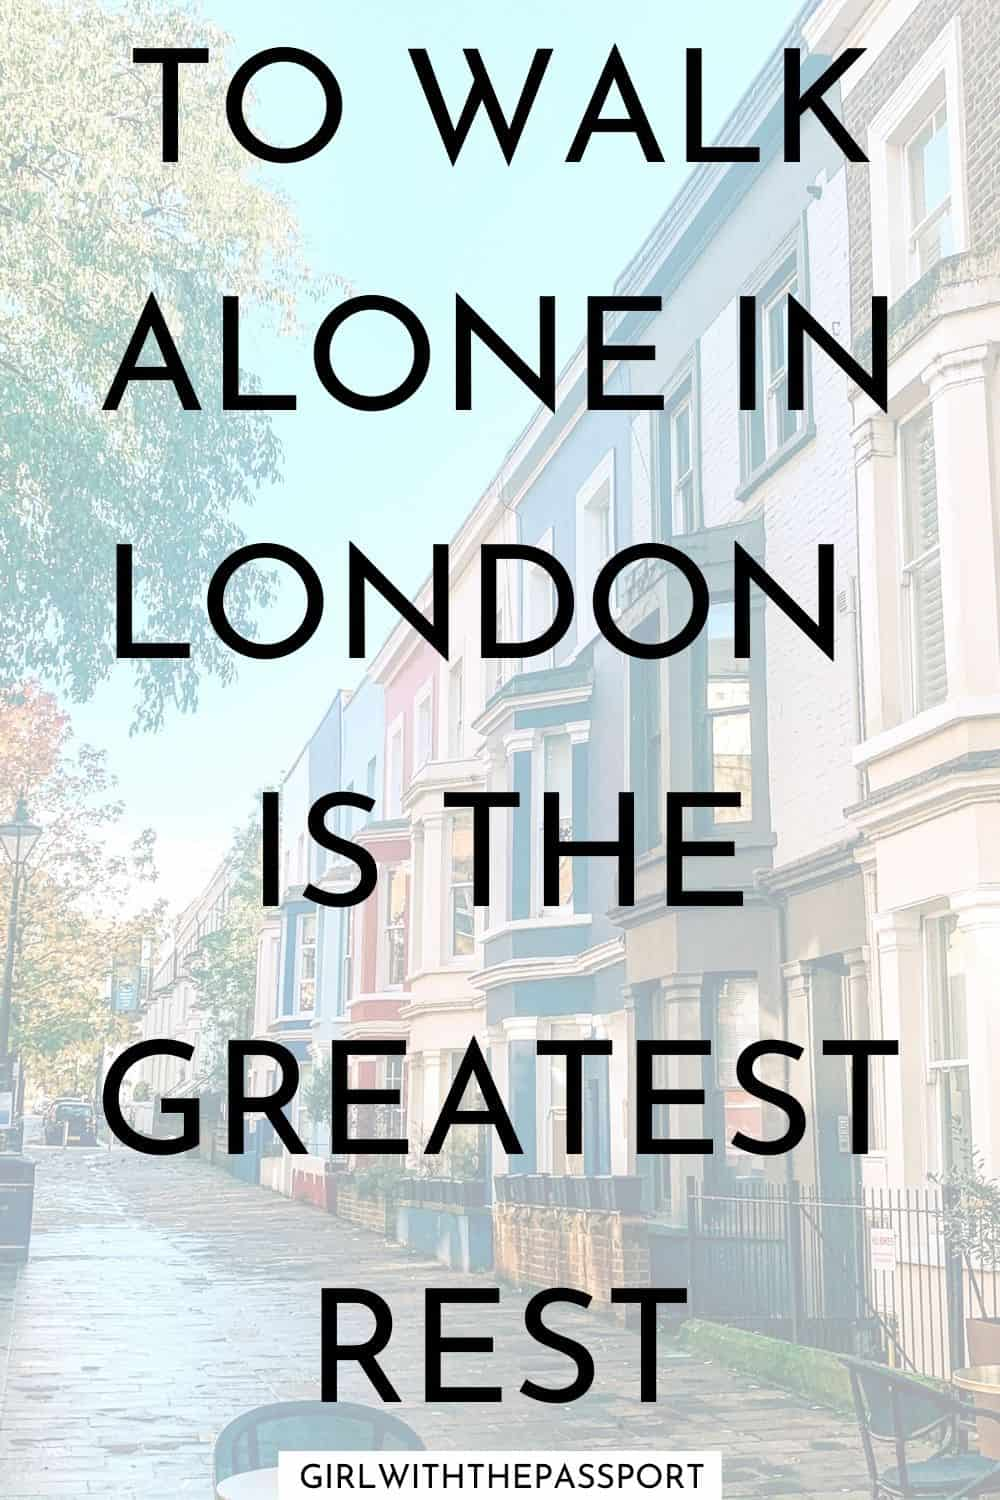 famous quotes about London